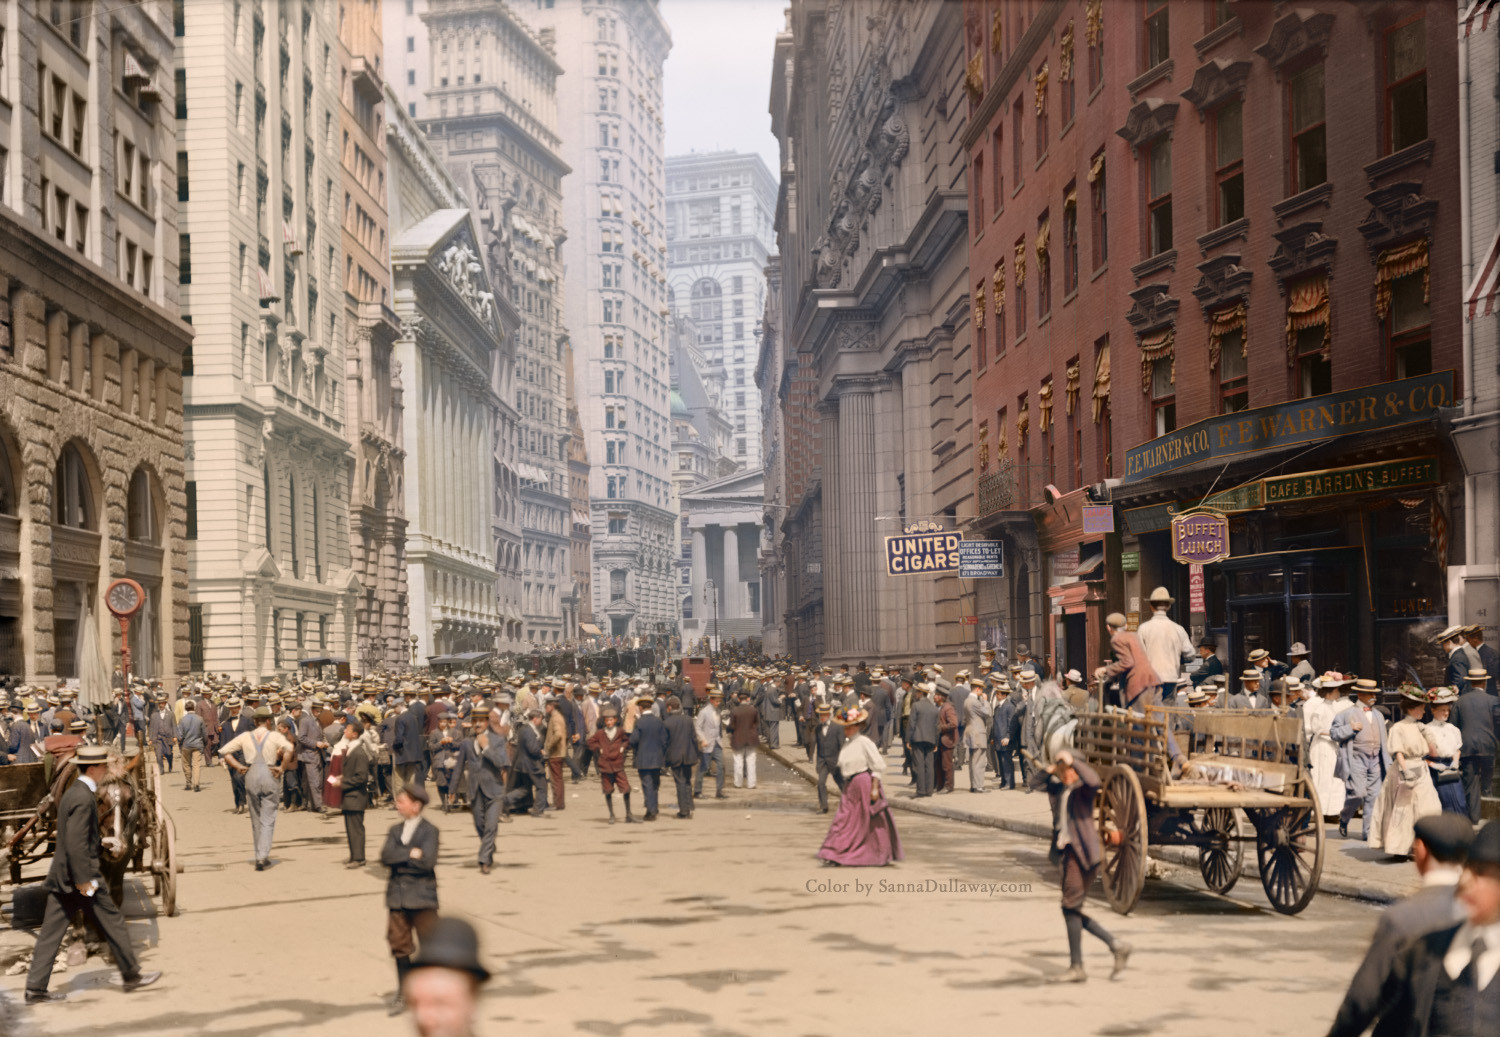 Colorized Photos From The Past Earthly Mission